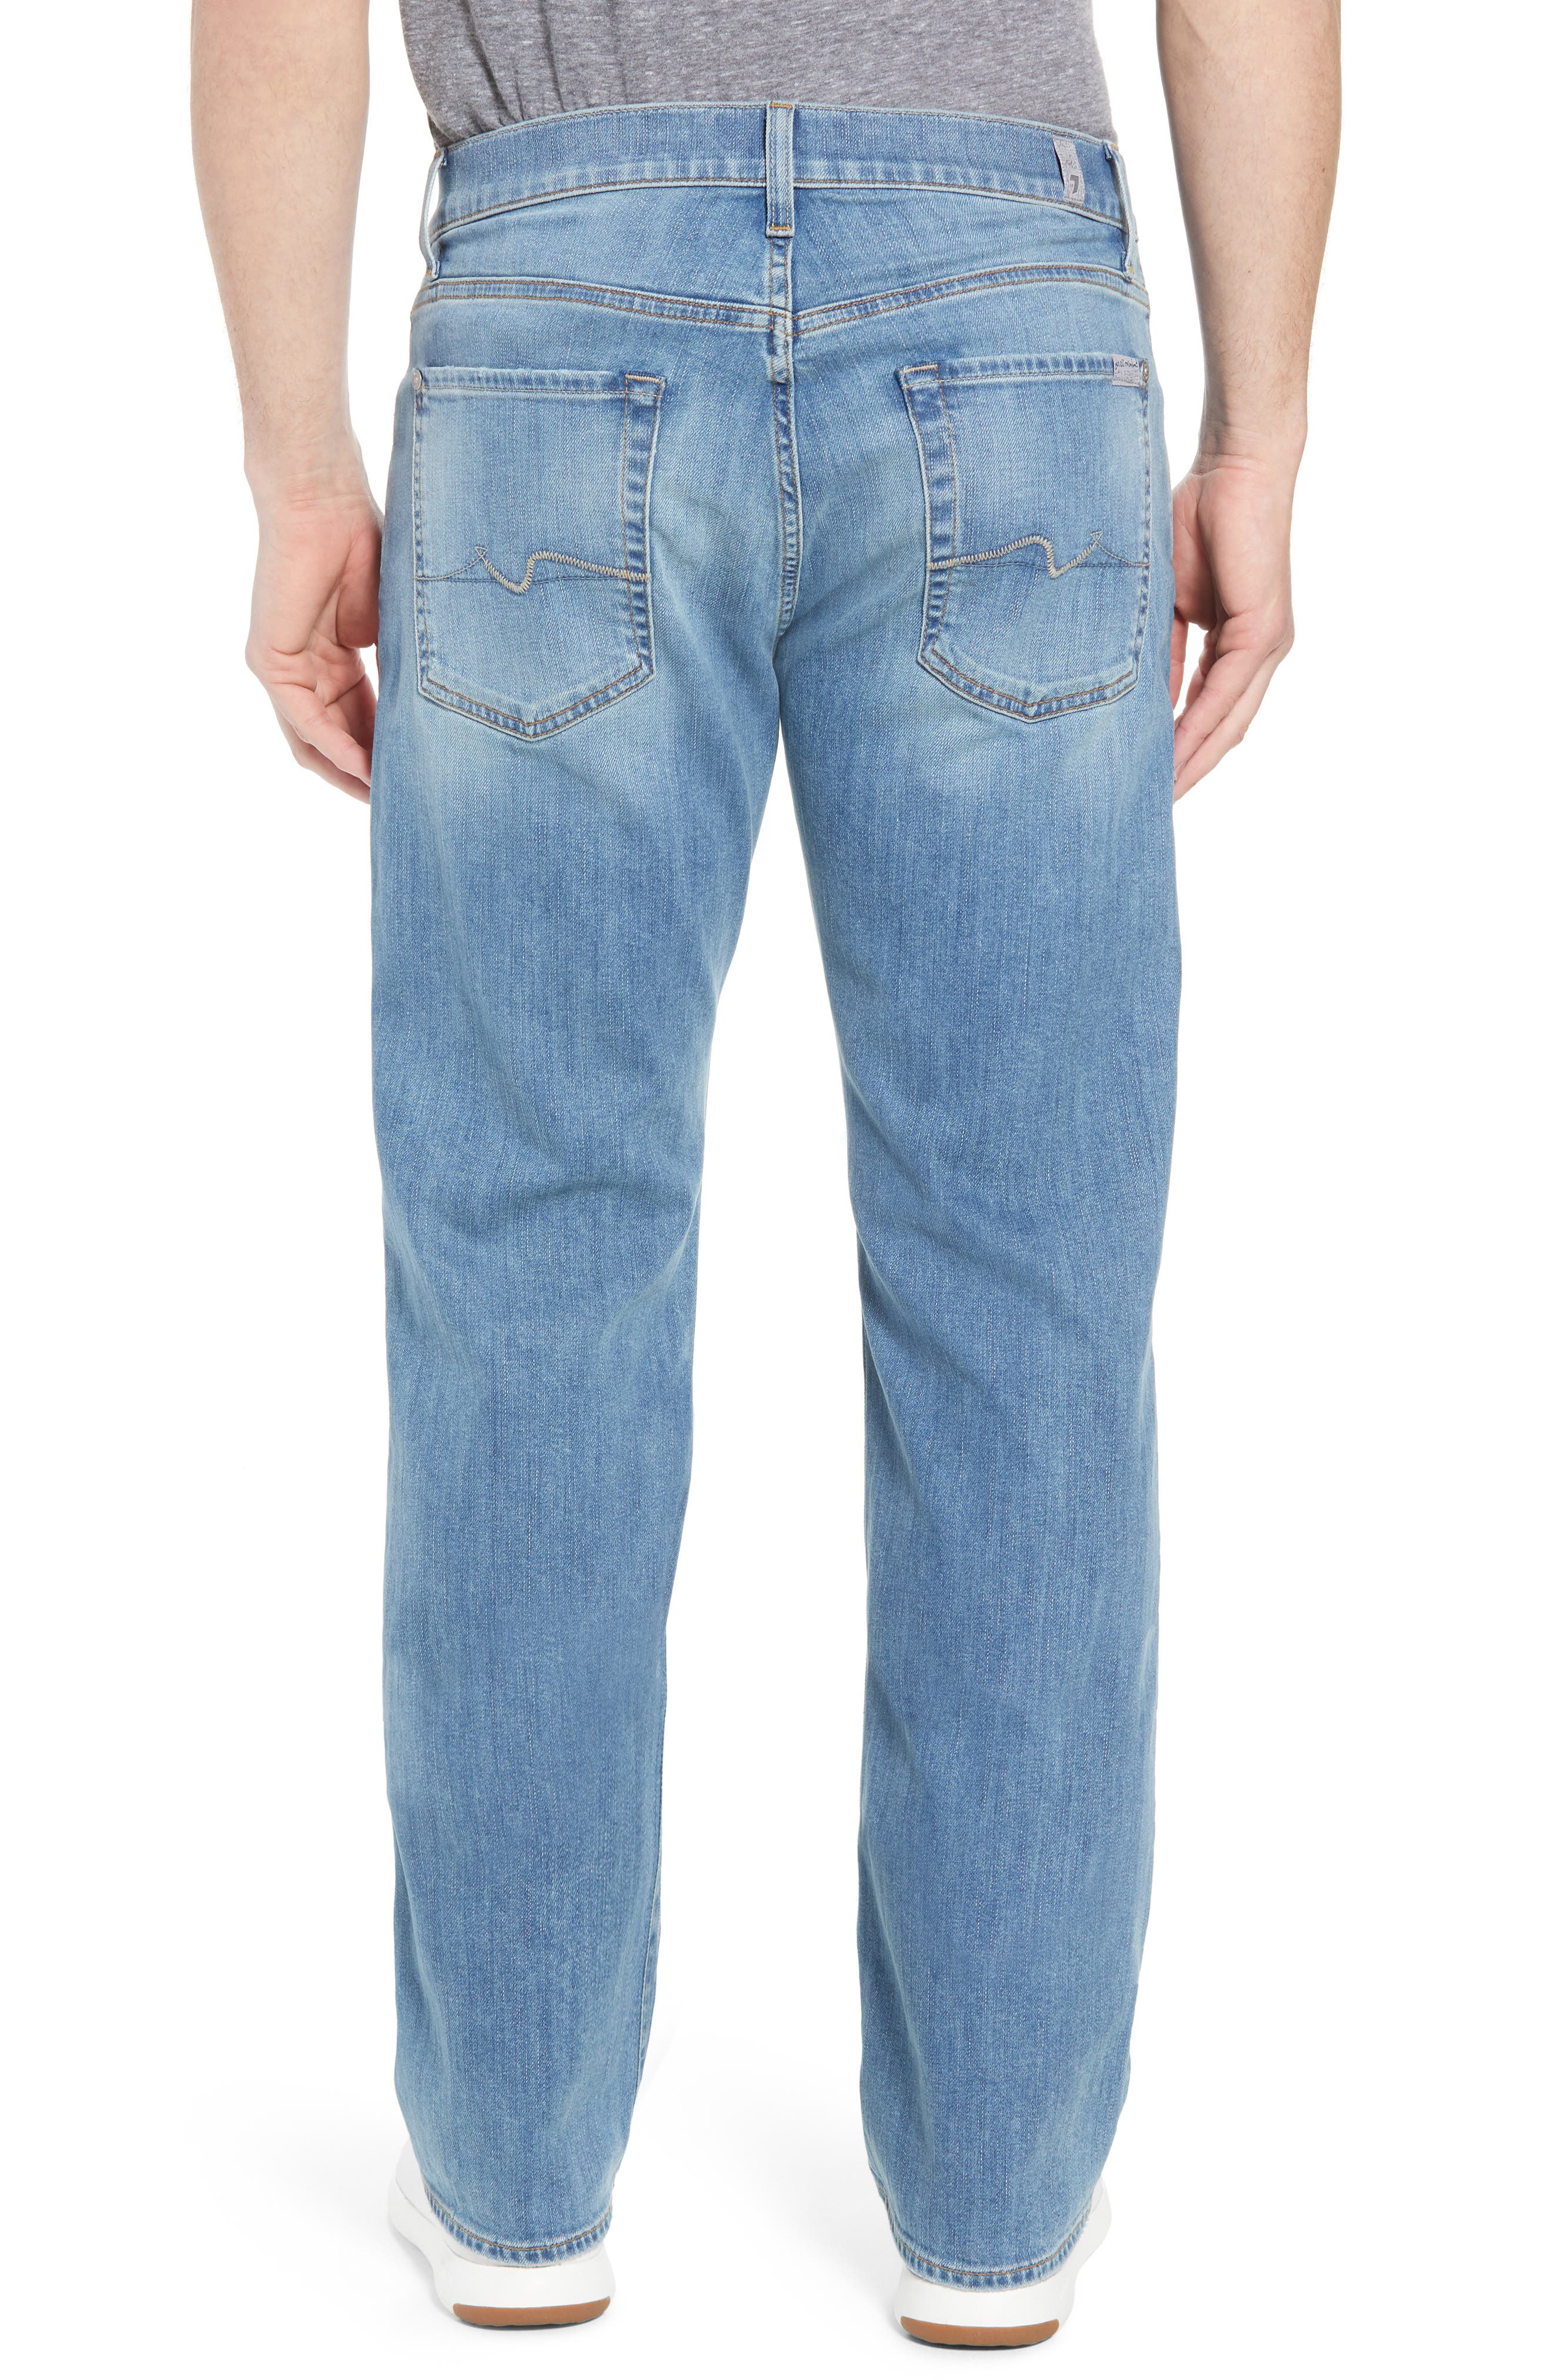 Austyn - Luxe Performance Relaxed Fit Jeans,                             Alternate thumbnail 2, color,                             Vahalla